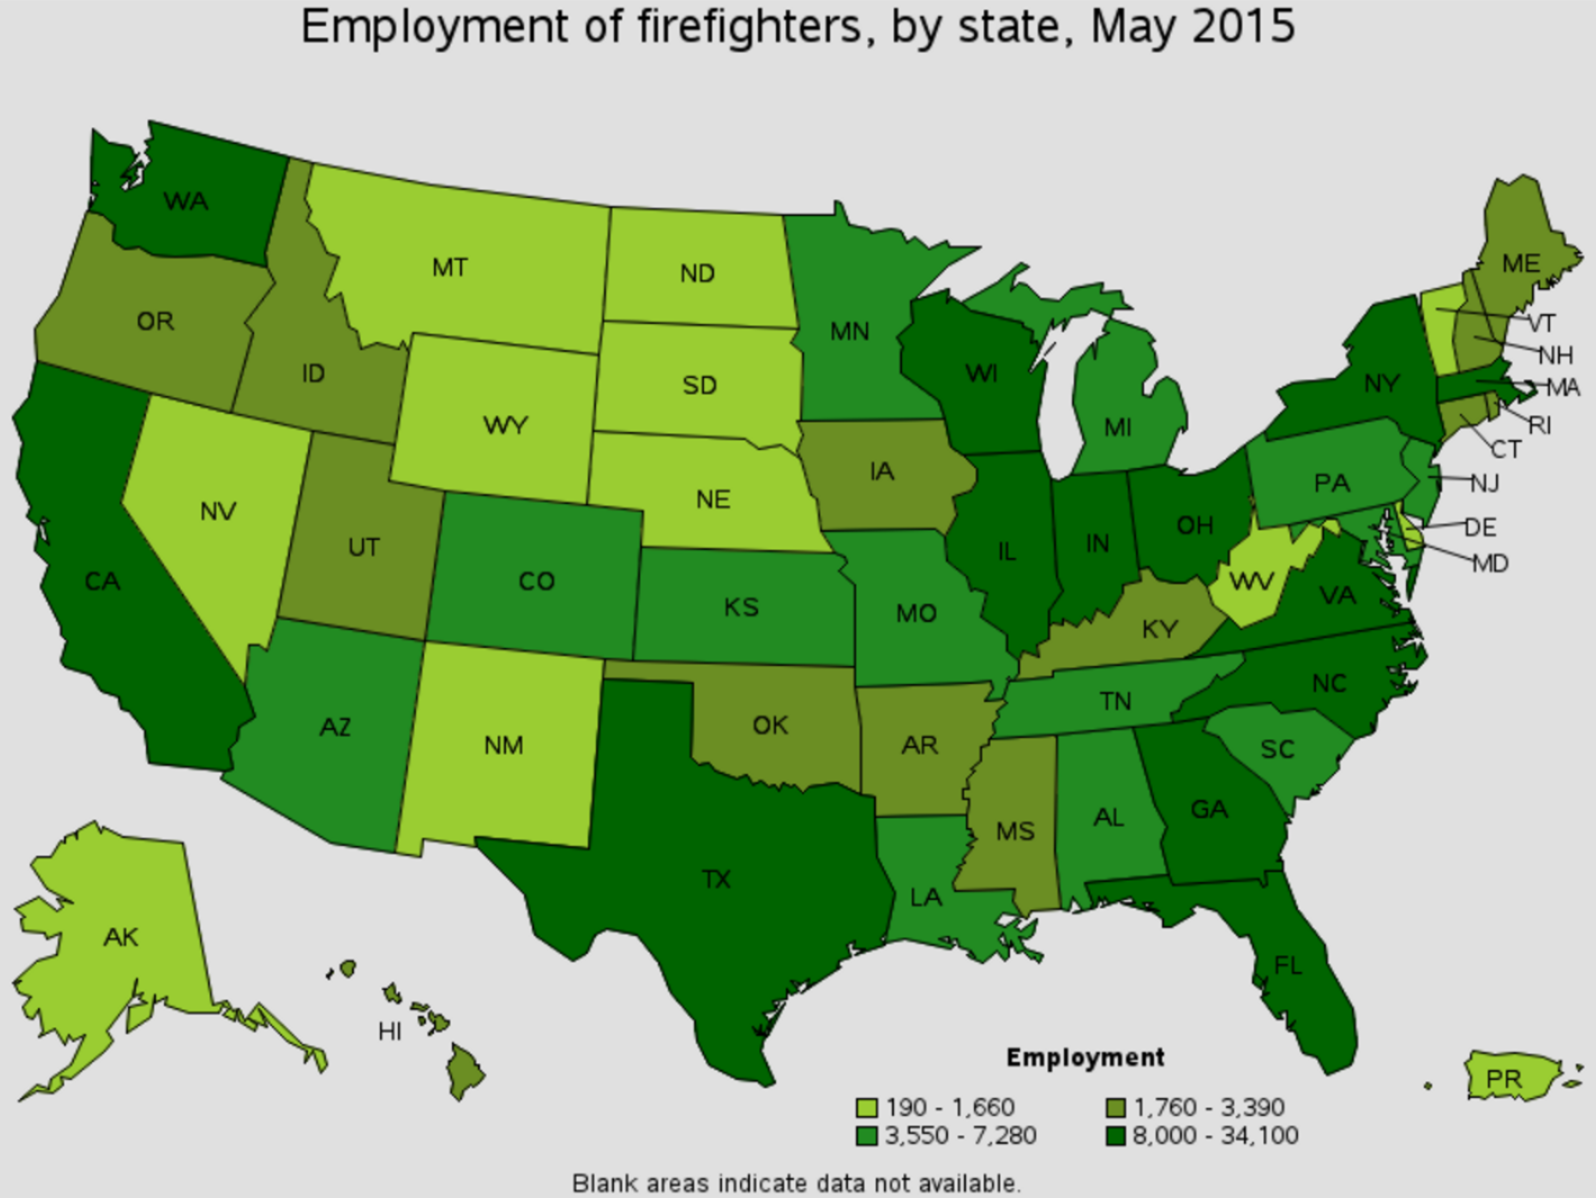 firefighter job outlook by state Blountstown Florida